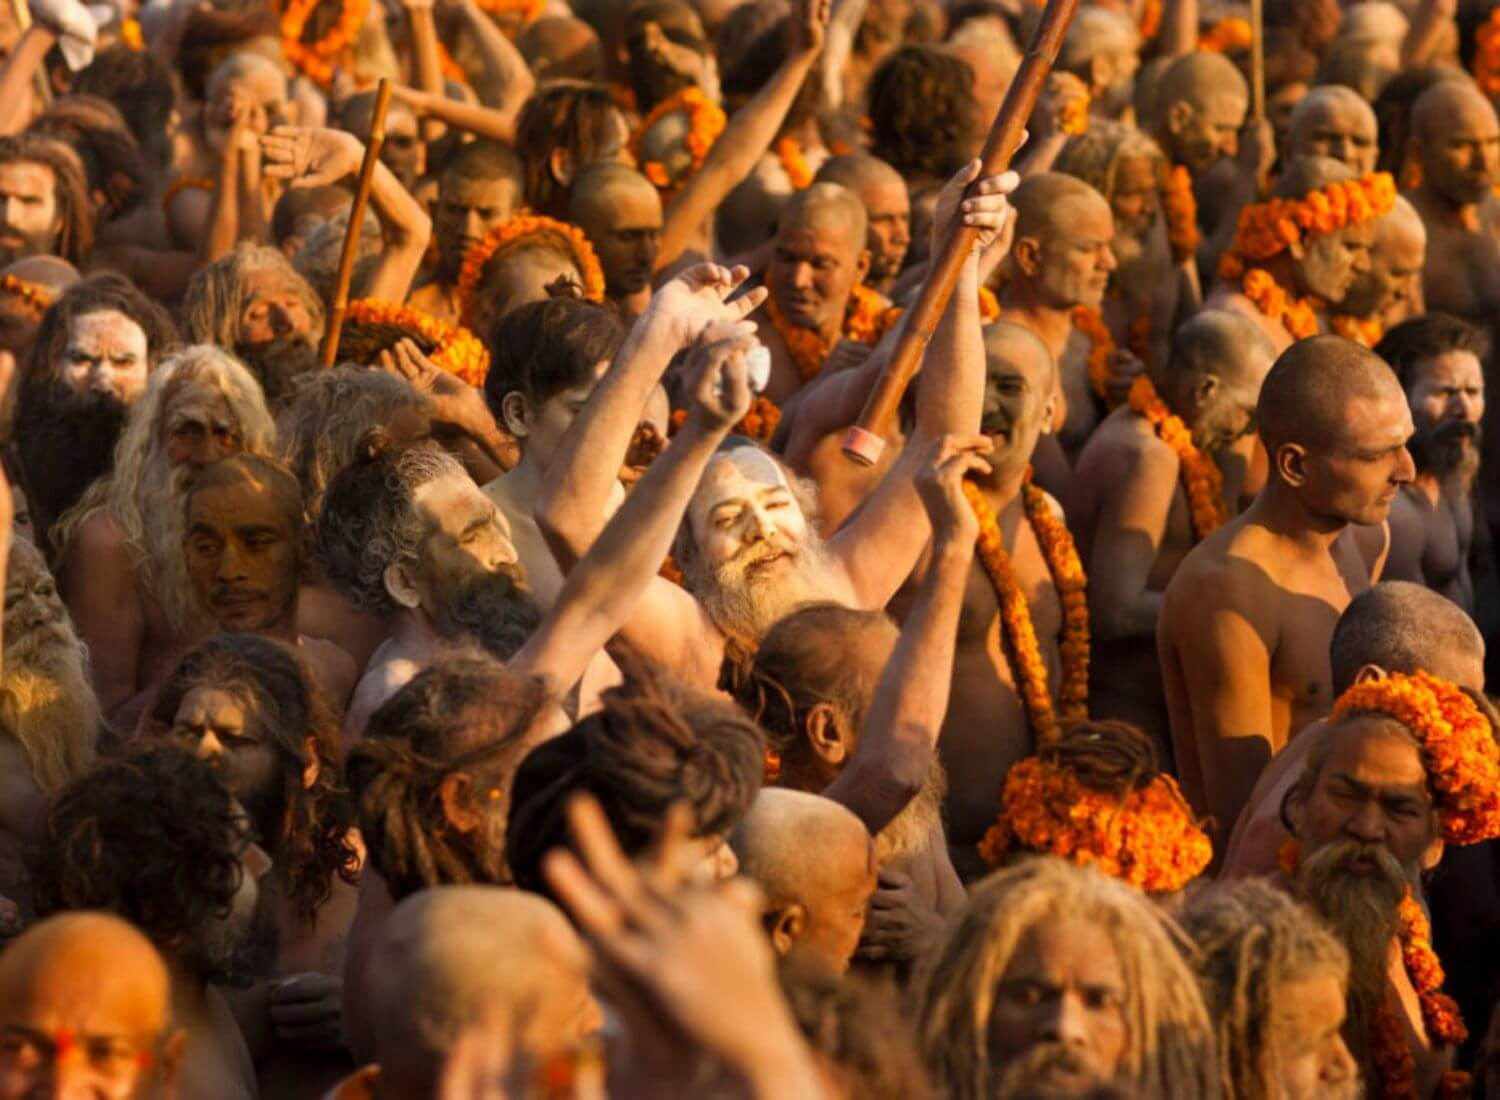 The Aghoris: The Darker Shade Of Indian Society